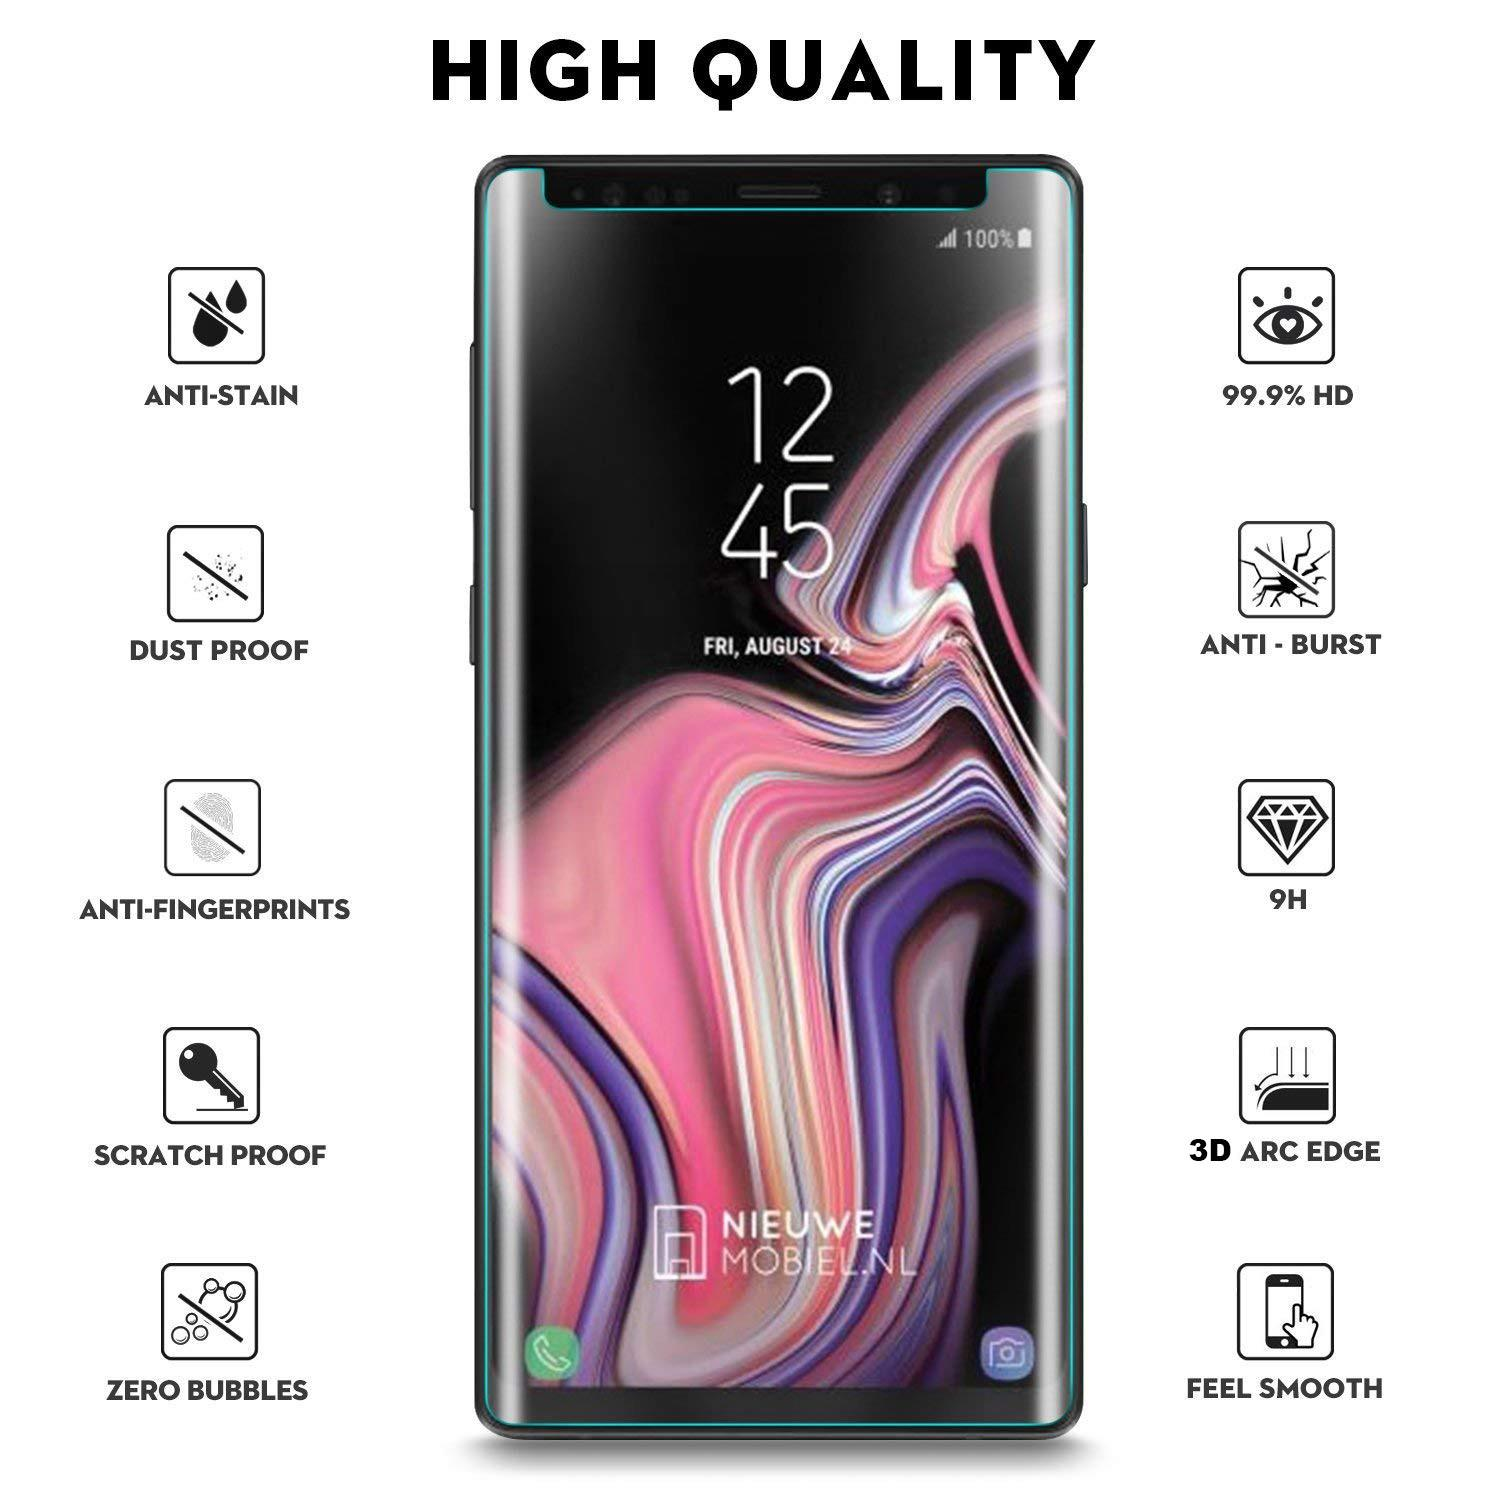 Samsung Galaxy Note 8 Case Clear View Flip Folio Cover Price In Goospery S7 Edge Soft Feeling Jelly Black Friendly 3d Full Tempered Glass Screen Protector For 9